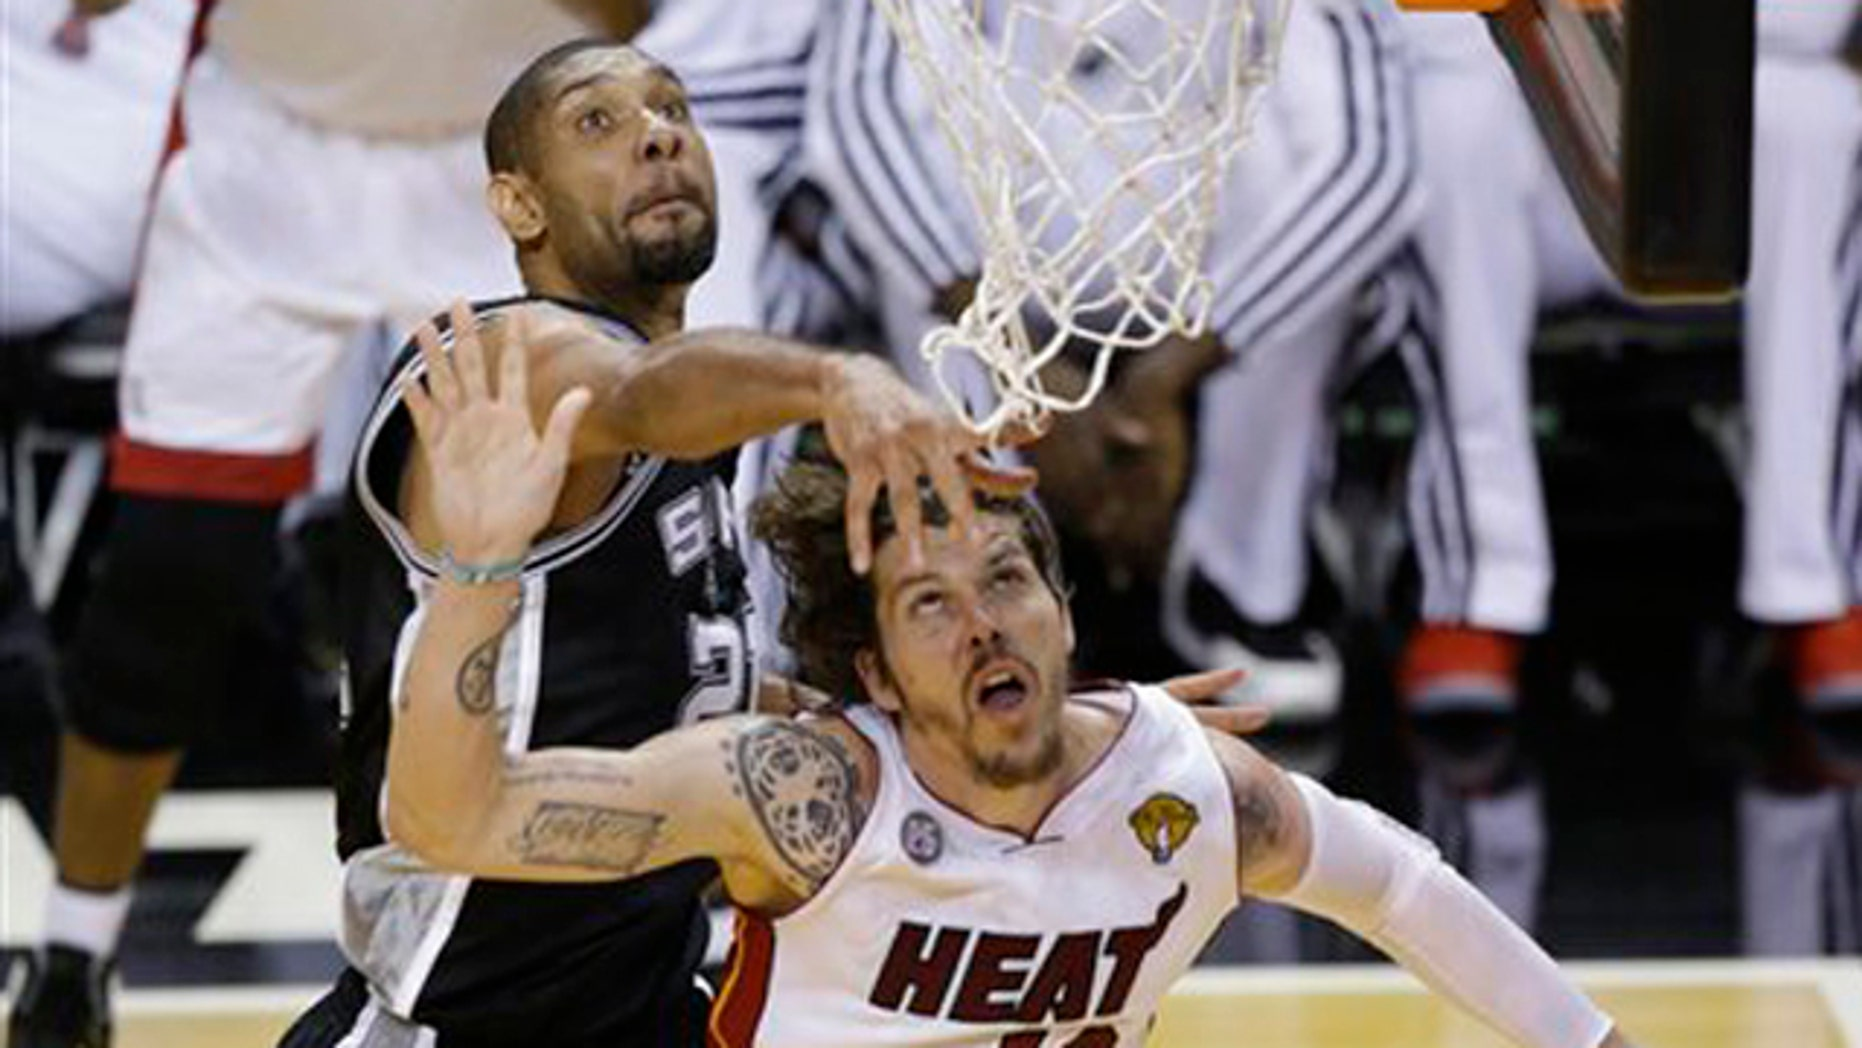 June 18, 2013: San Antonio Spurs power forward Tim Duncan (21) blocks the shot of Miami Heat shooting guard Mike Miller (13) during the second half of Game 6 of the NBA Finals basketball game.